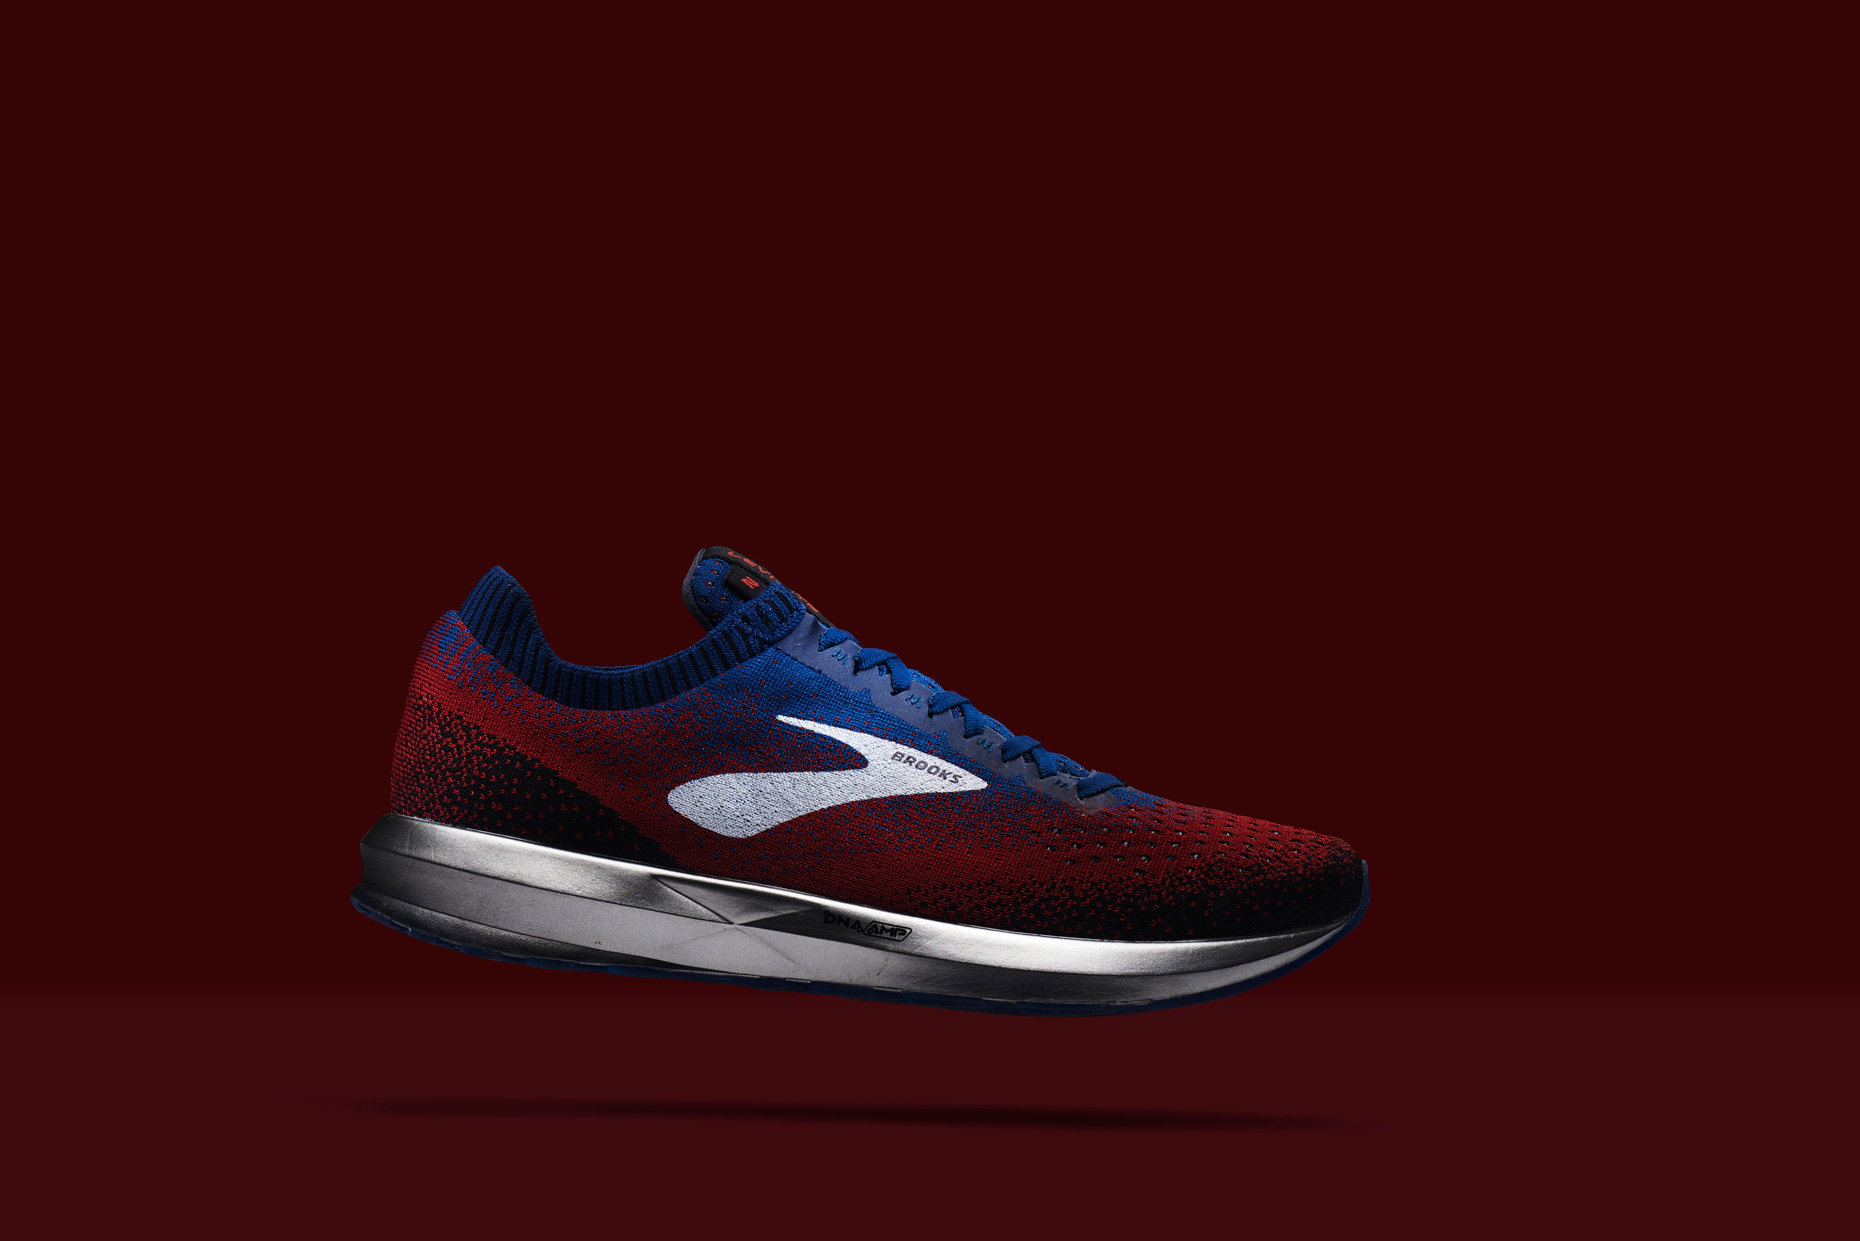 Brooks Street Running Shoe hovering above red surface, by still life photographer Adrian Mueller New York